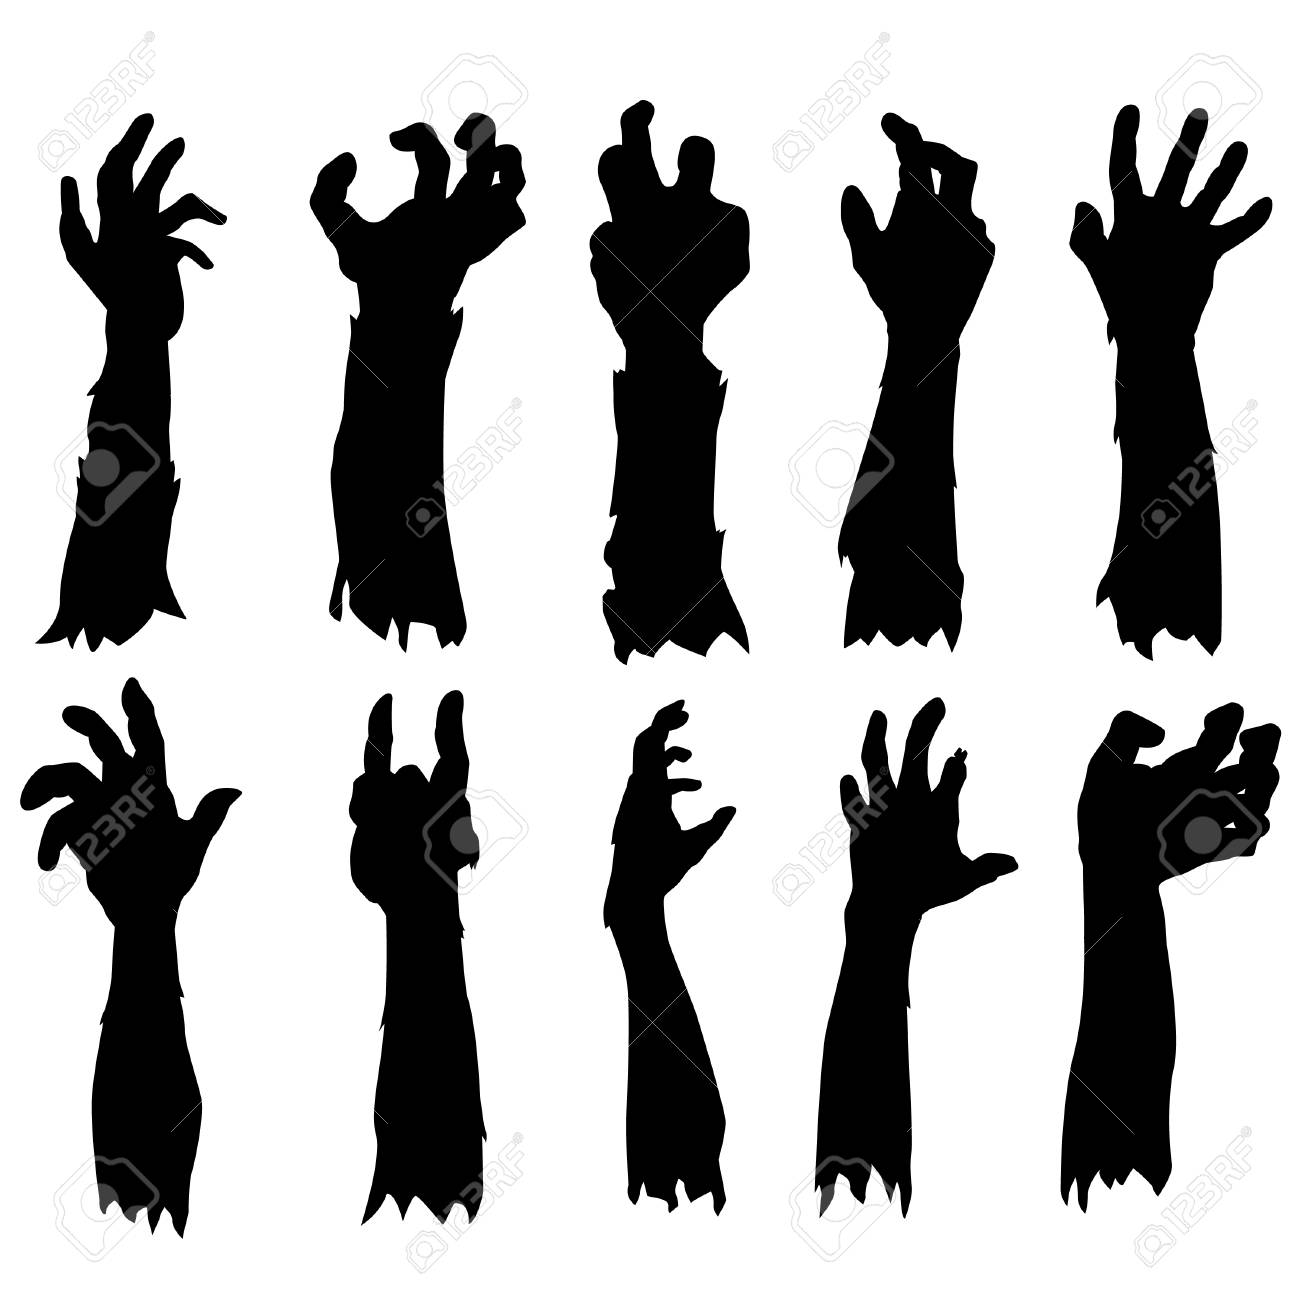 Zombie Hand Silhouette Clip Art Design Vector Set Collection.